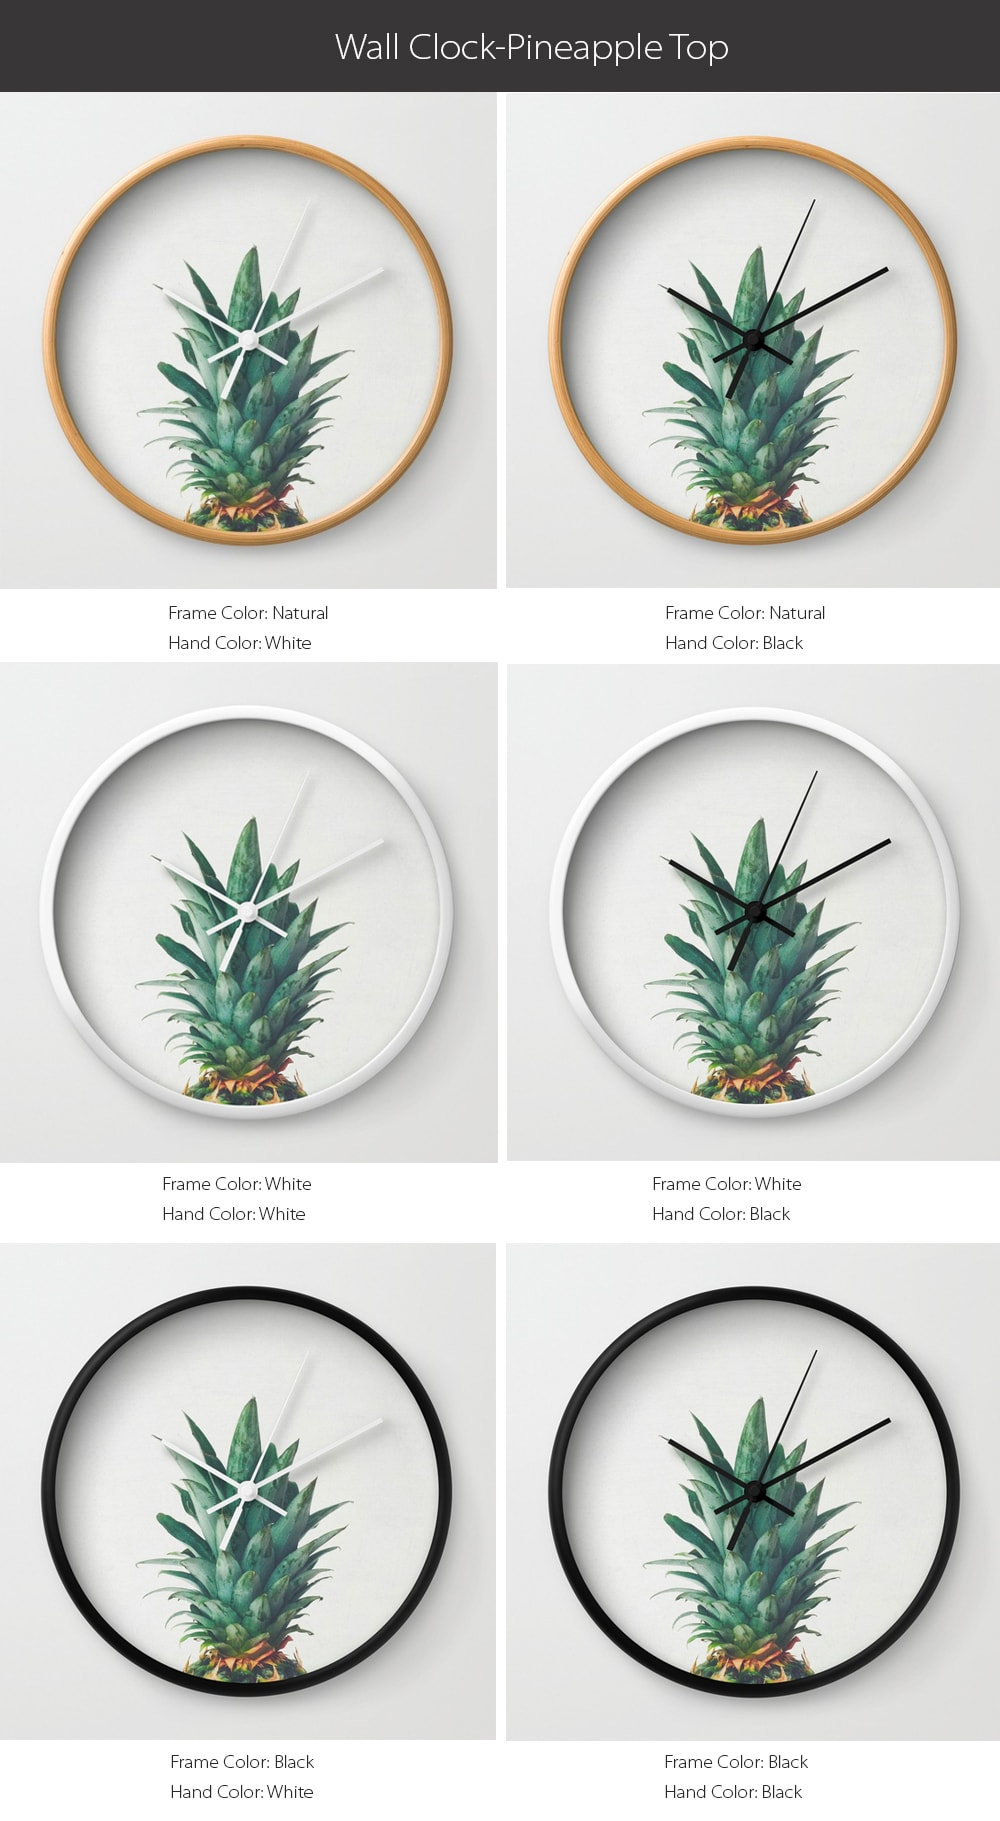 Wall Clock - Pineapple Top Design Special